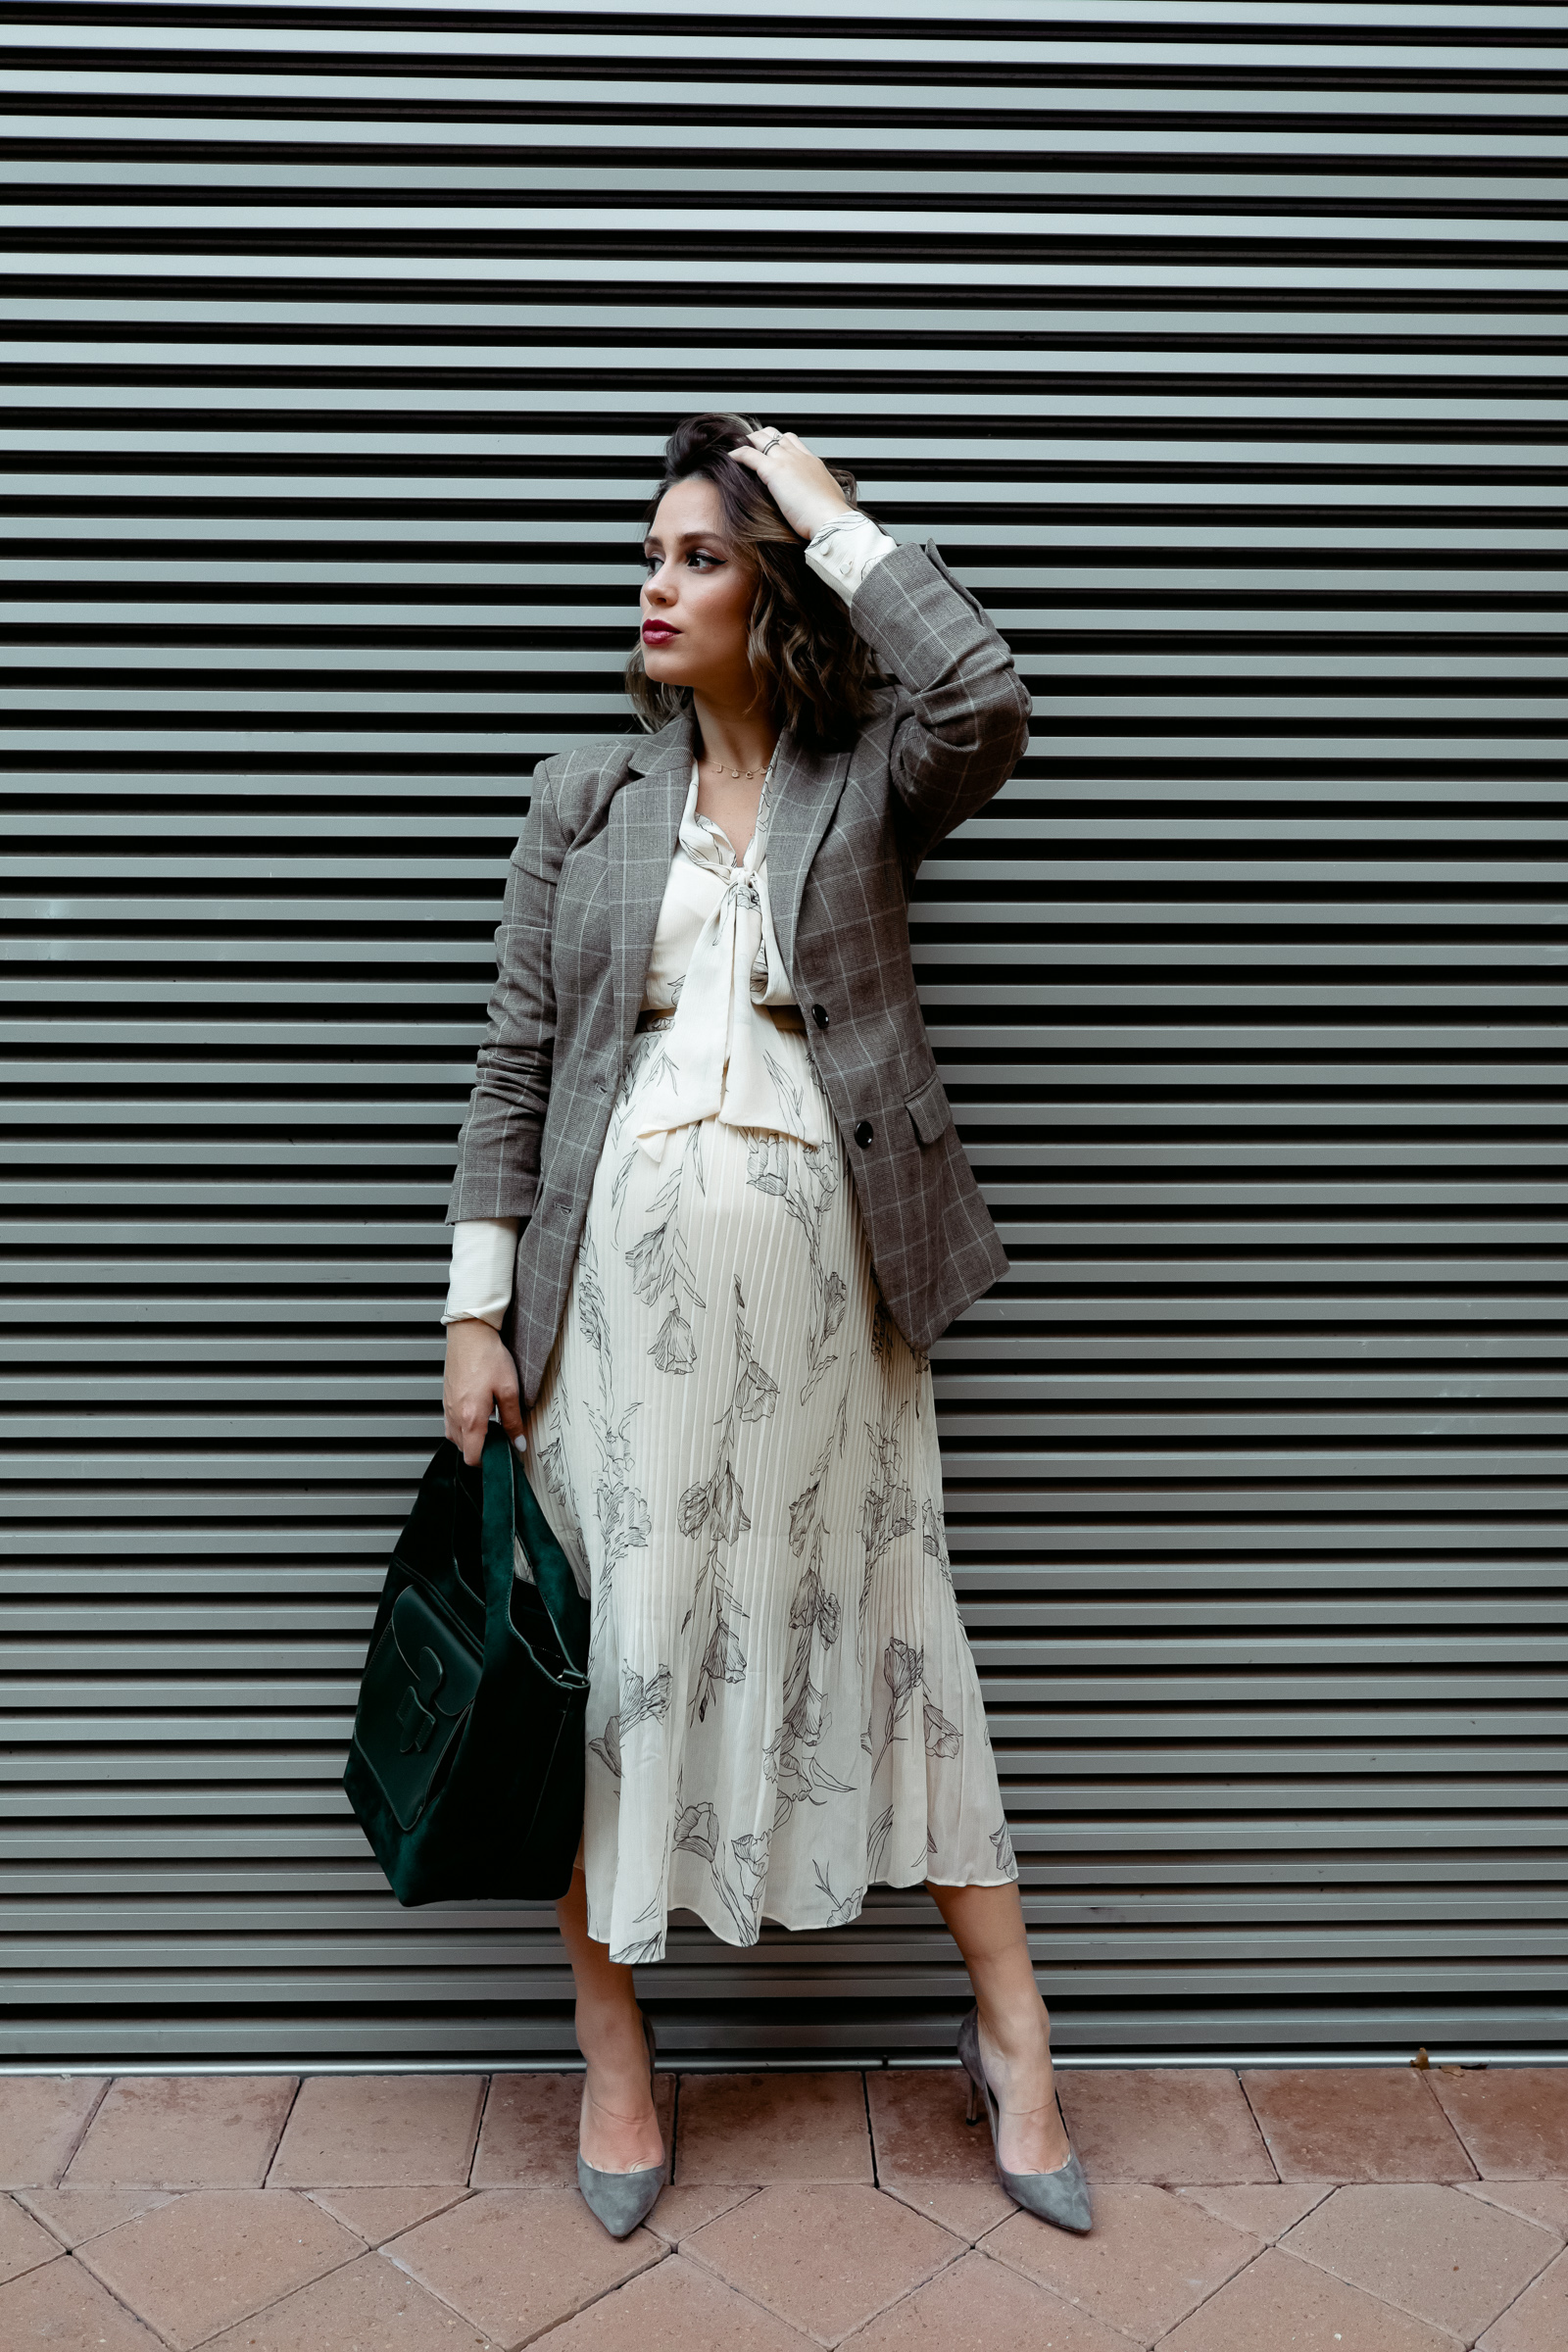 Elly Brown wears a Target pleated fall dress that's under $35 with grey suede heels and a blazer for a chic work outfit